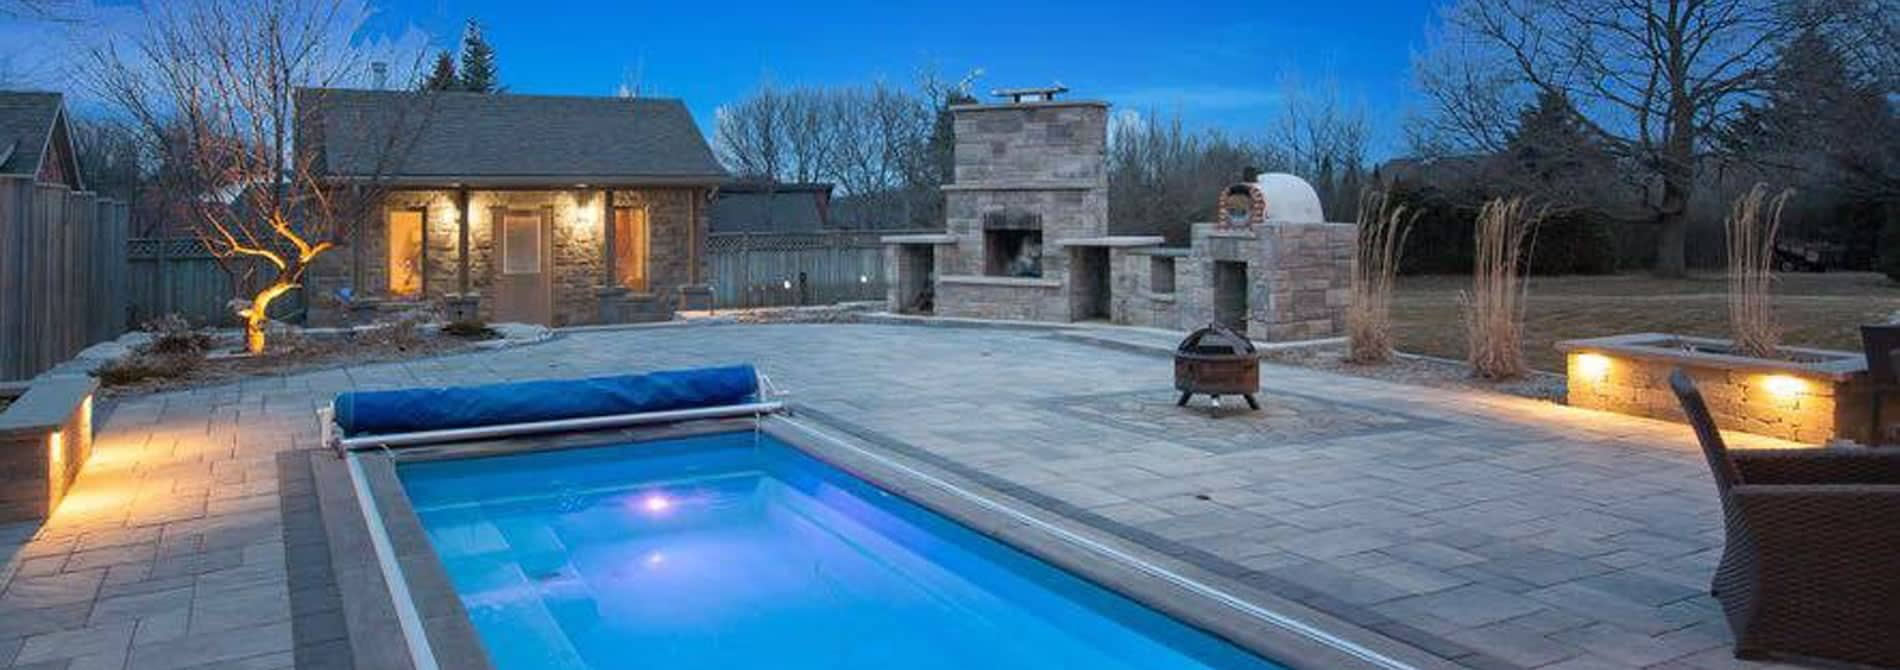 Pool Paving Design